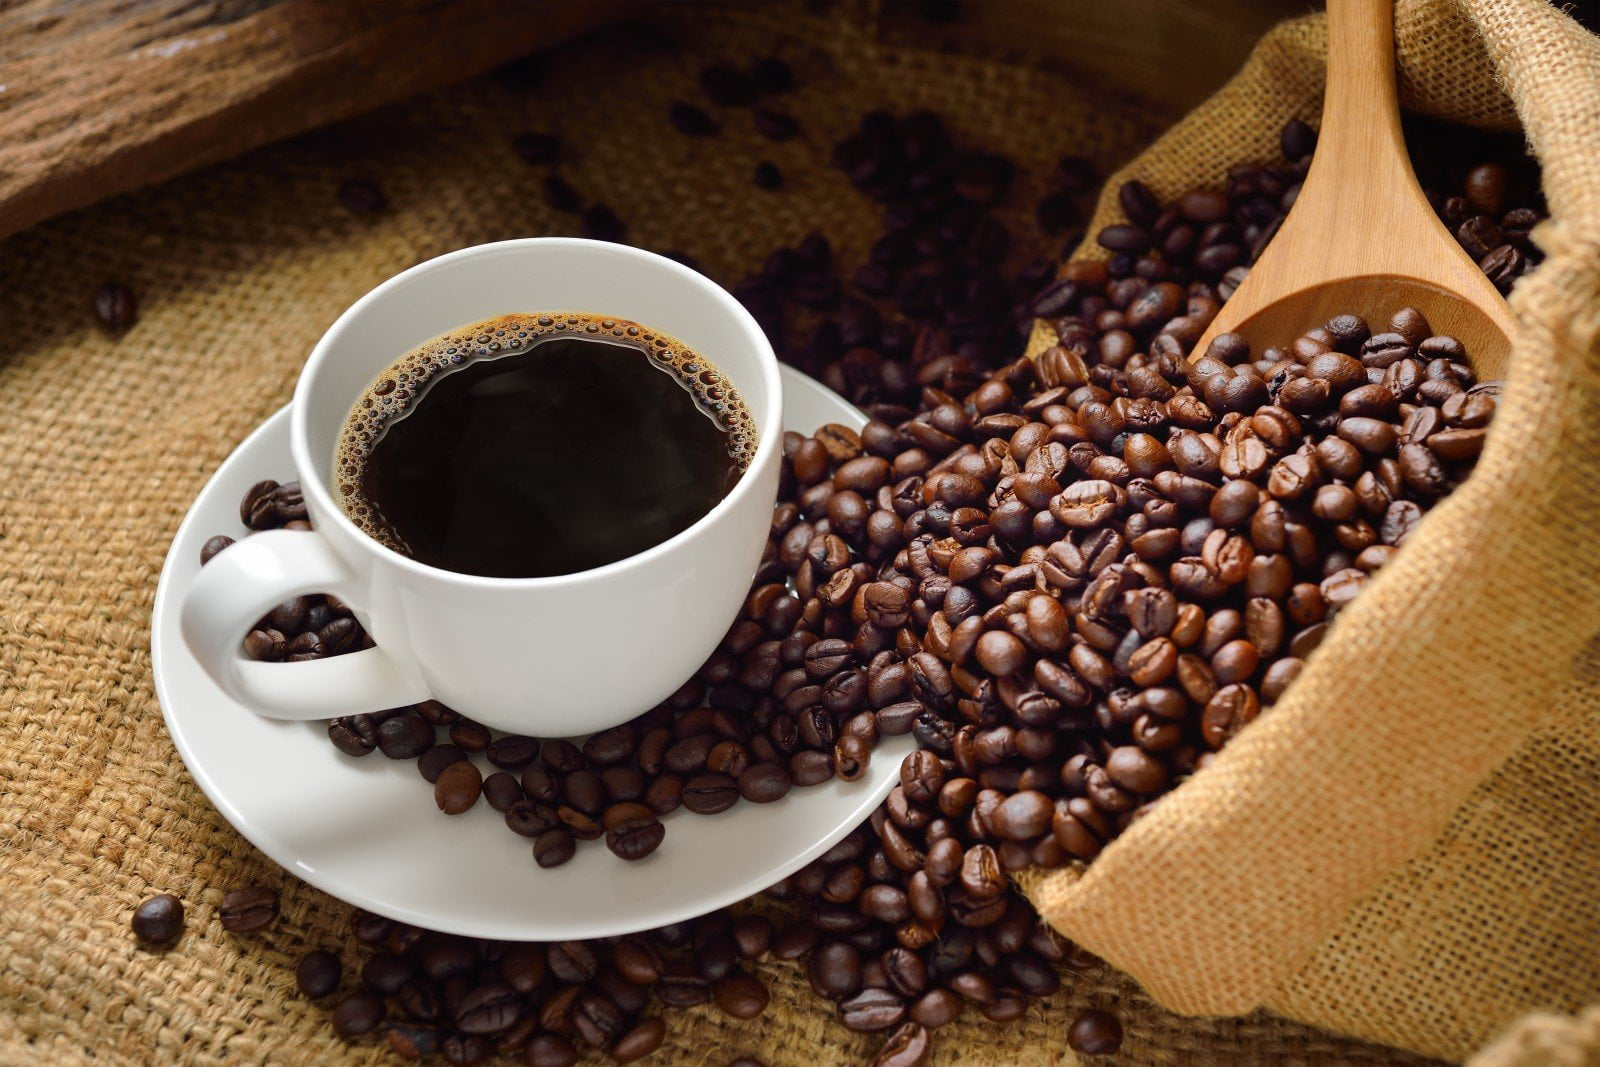 Is coffee healthy to drink